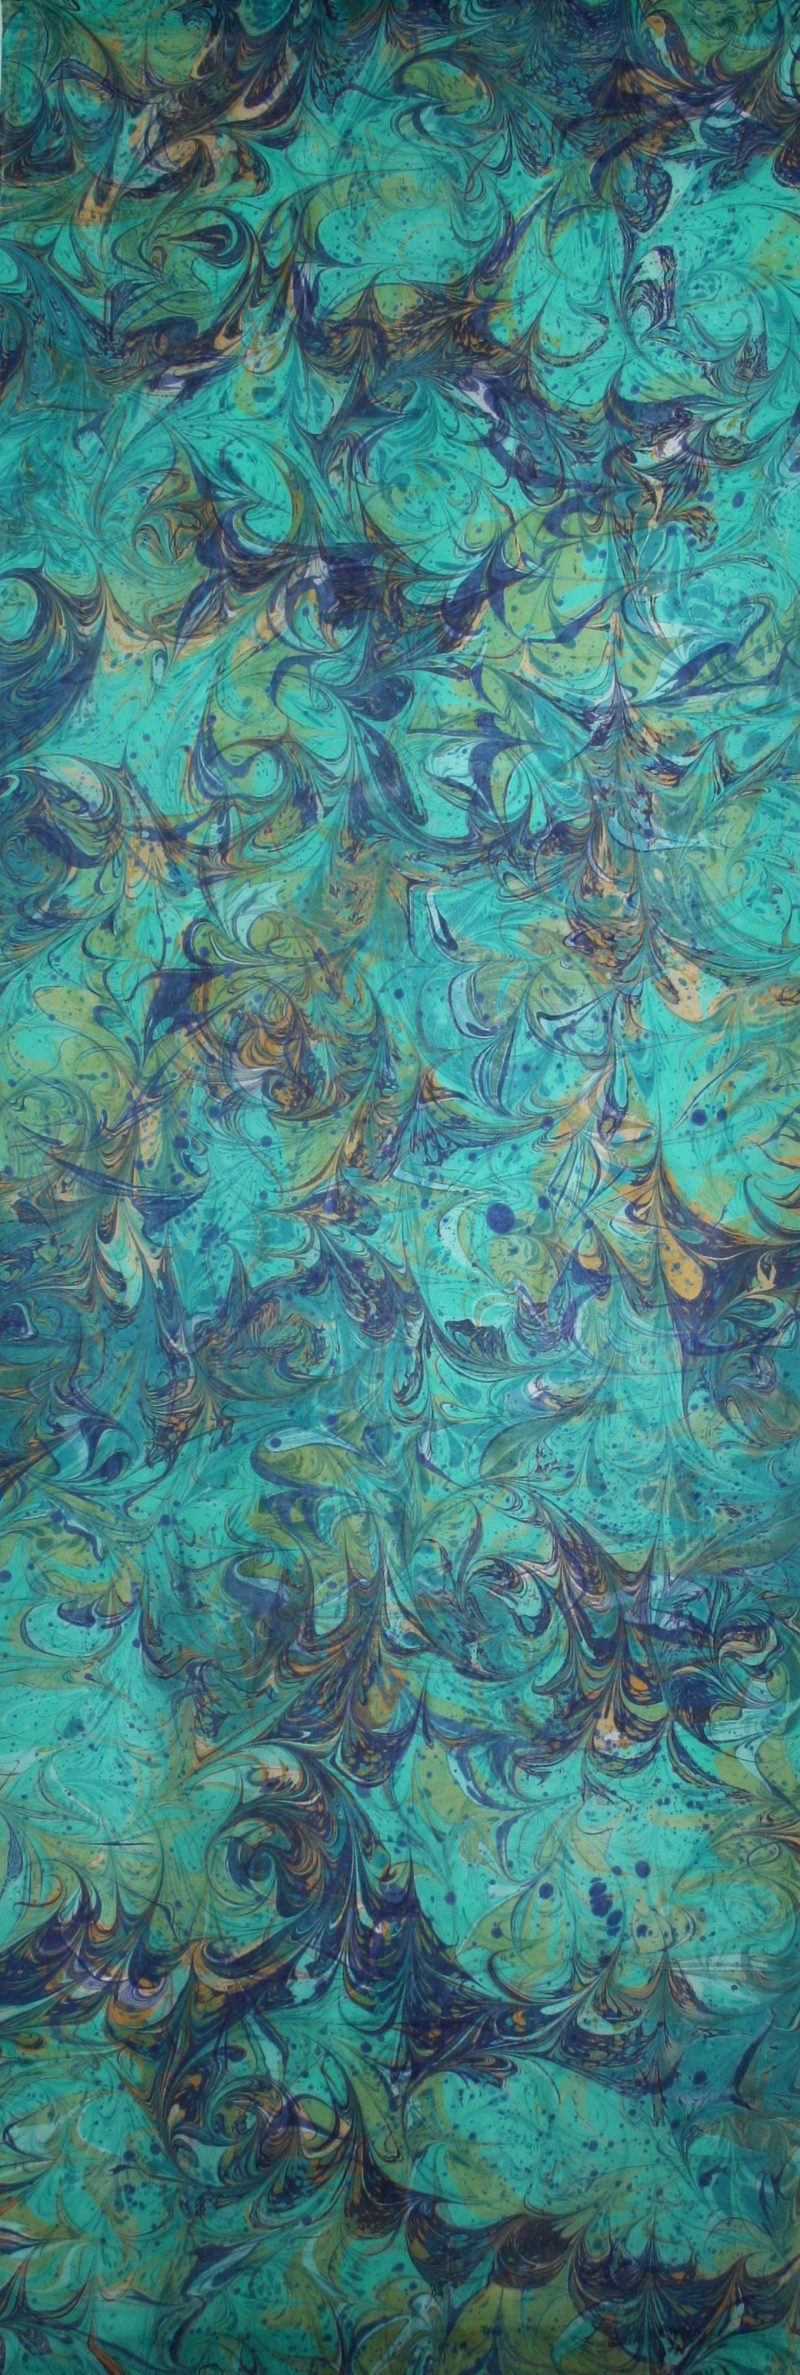 detail in greens, blues, burnt sienna hand marbled silk wall hanging